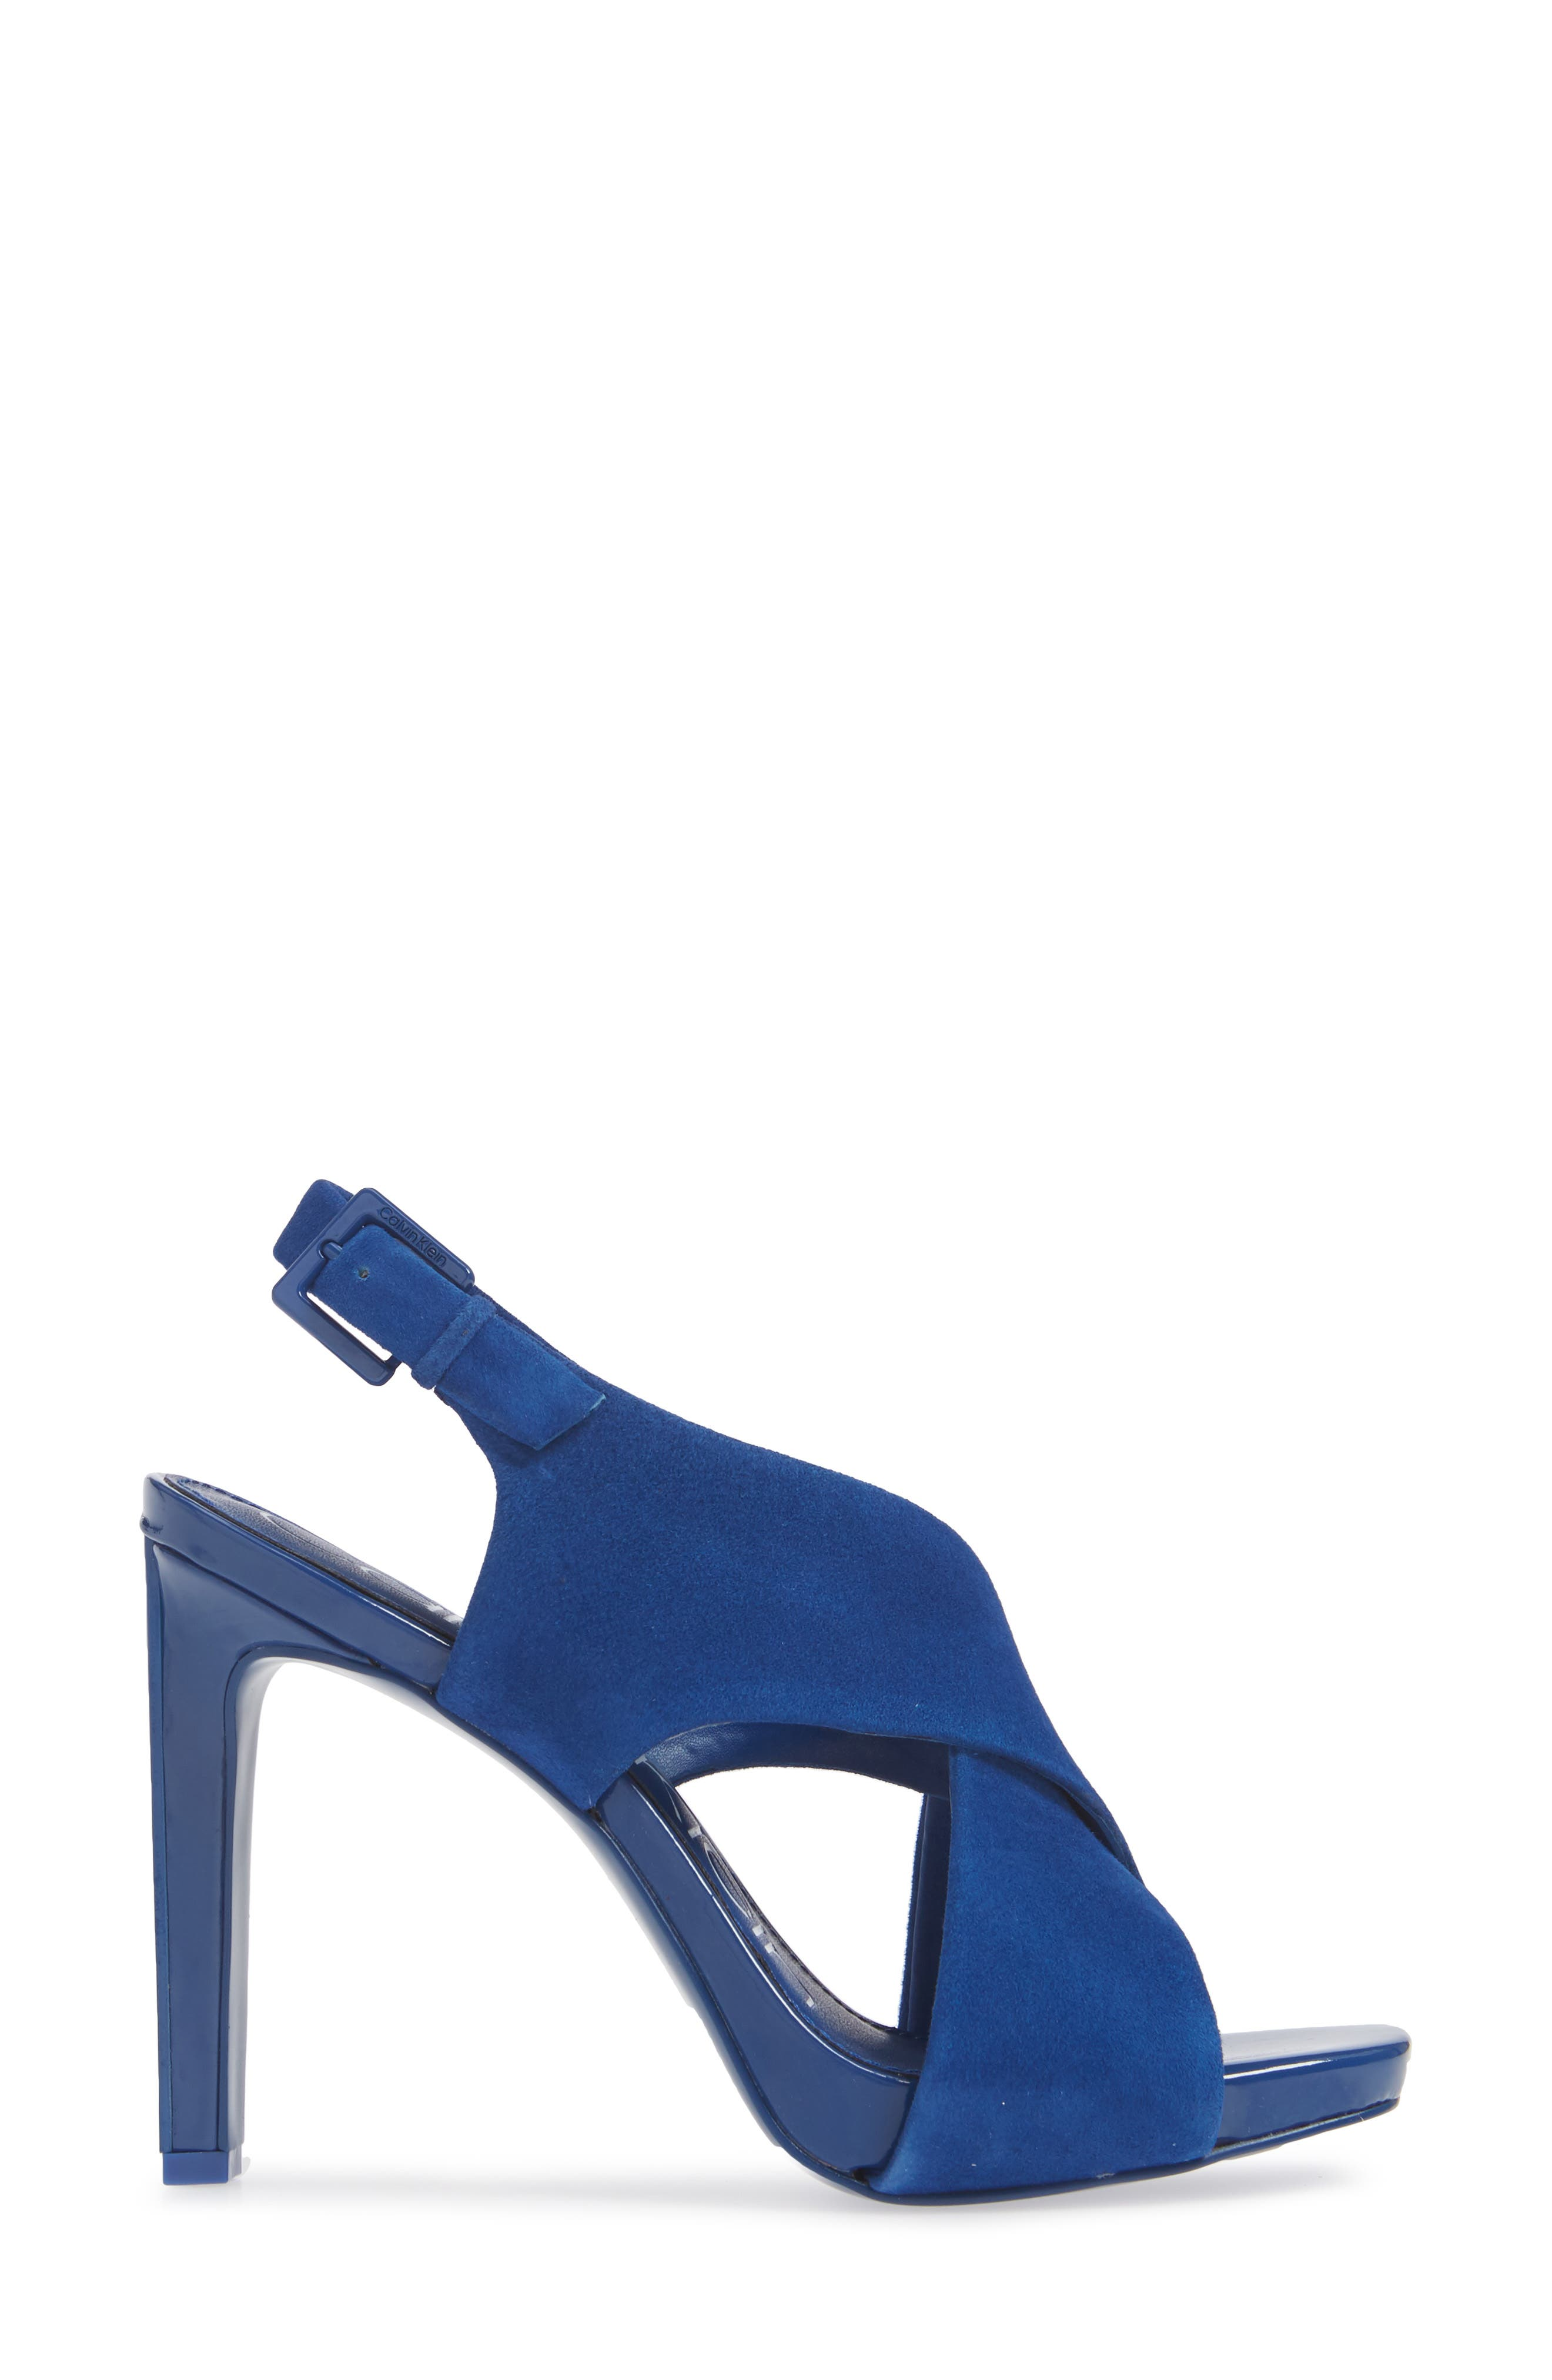 CALVIN KLEIN, Myra Cross Strap Sandal, Alternate thumbnail 3, color, ROYAL BLUE SUEDE